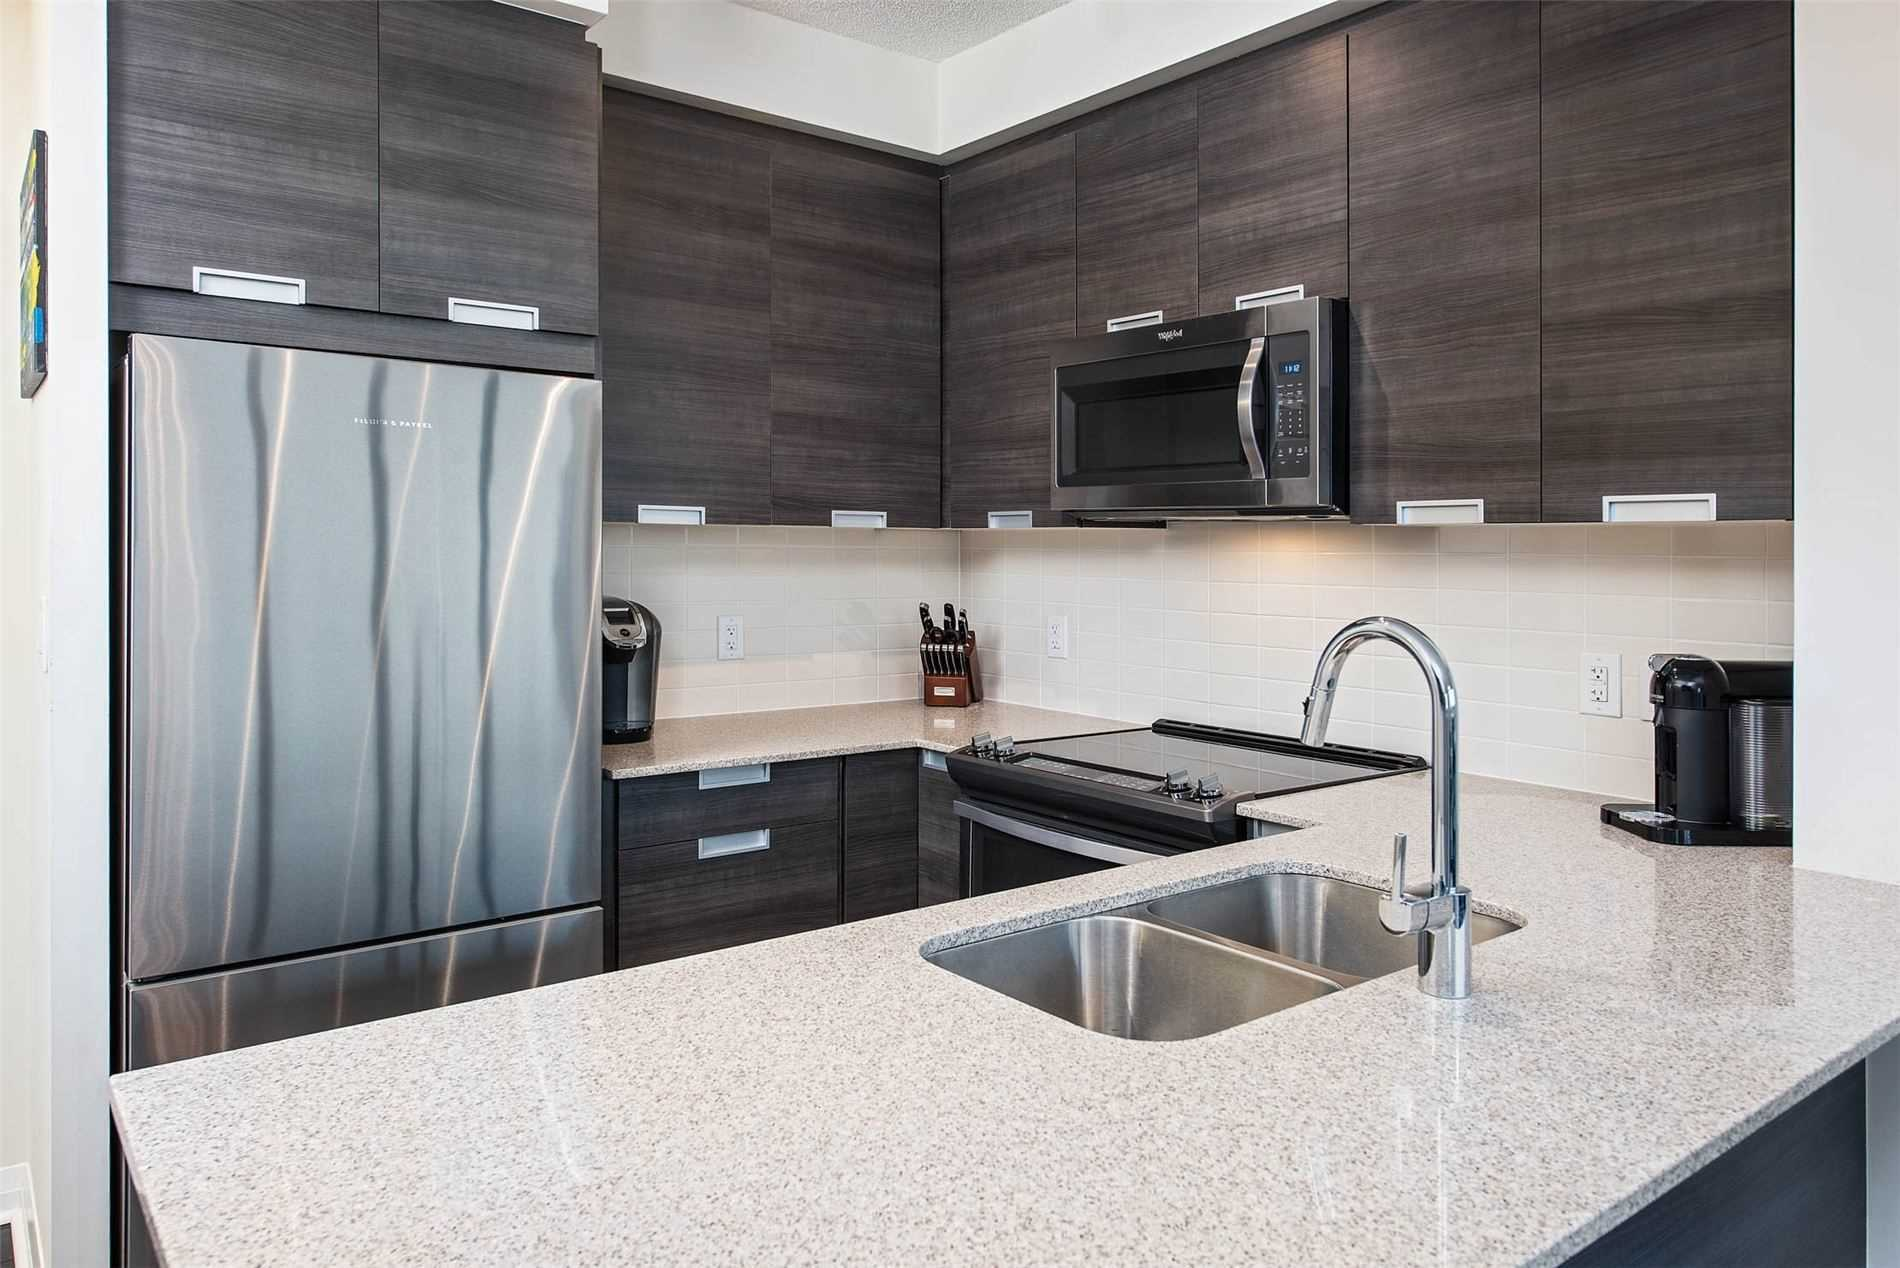 #602 - 5025 Four Springs Ave, Mississauga W4599421